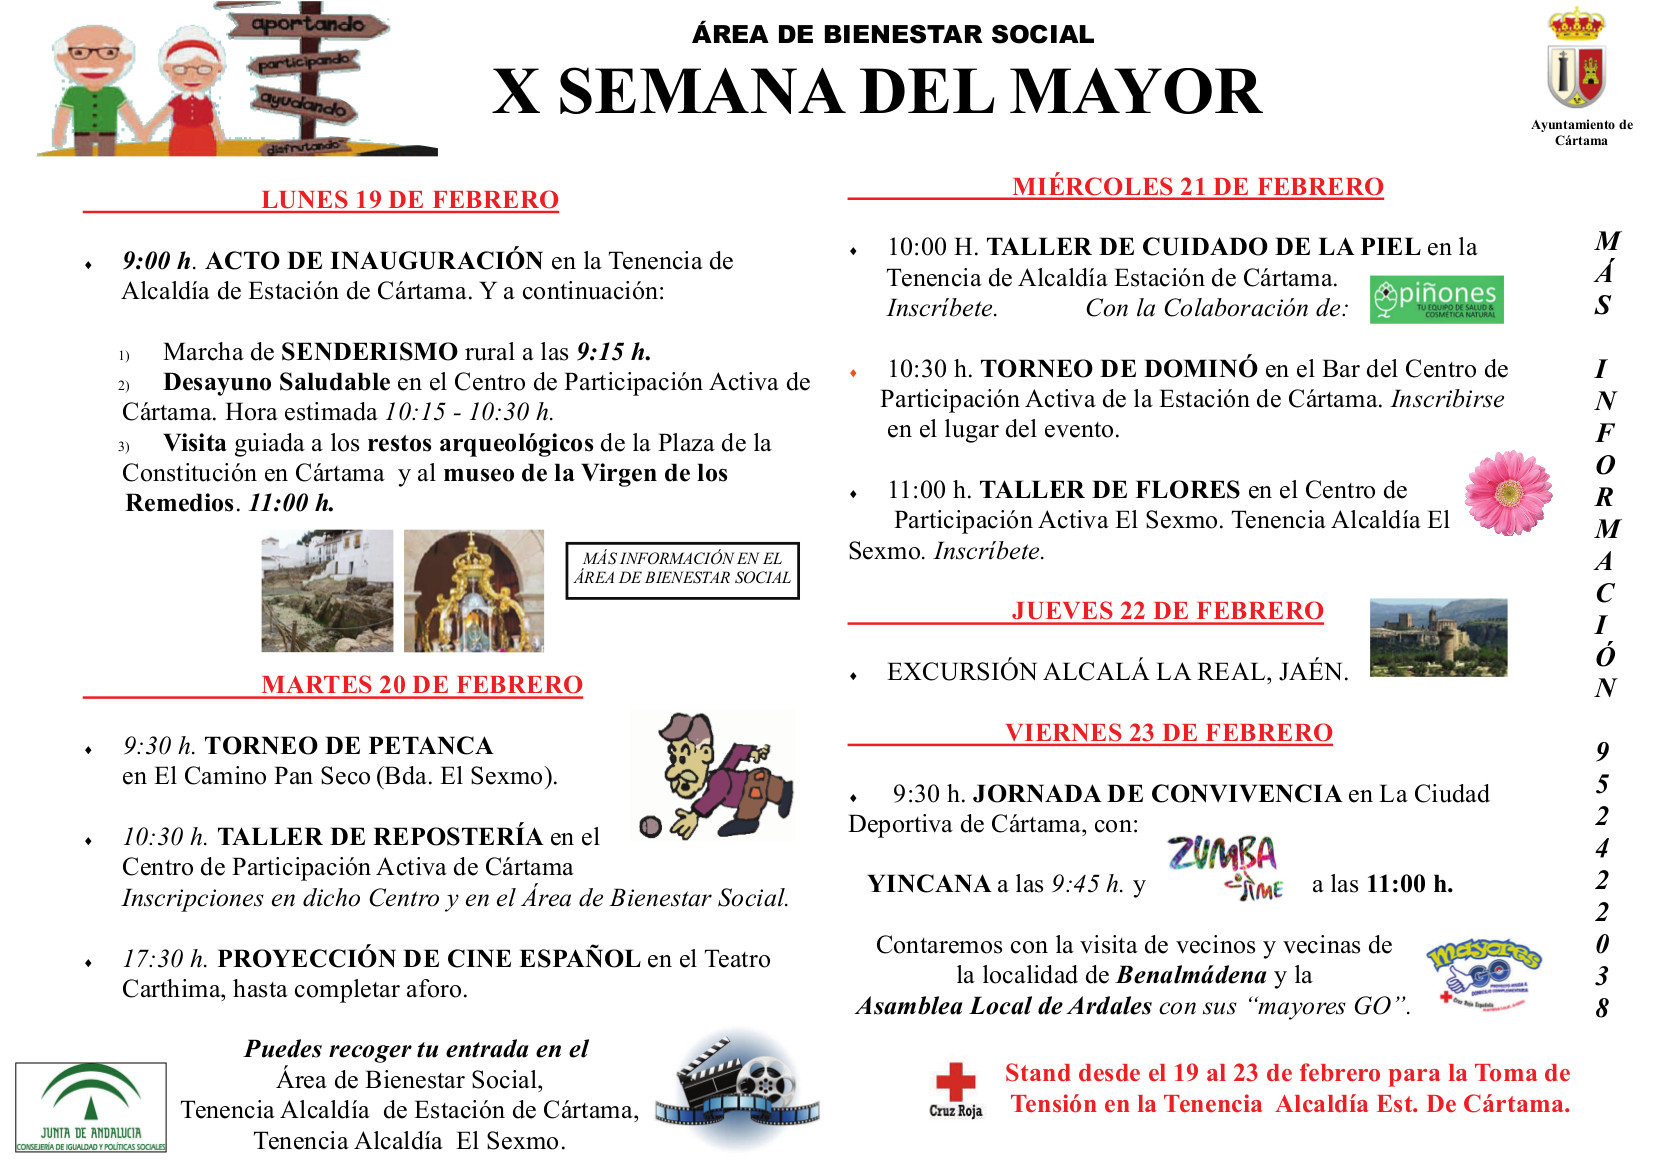 cartel-de-la-semana-del-mayor